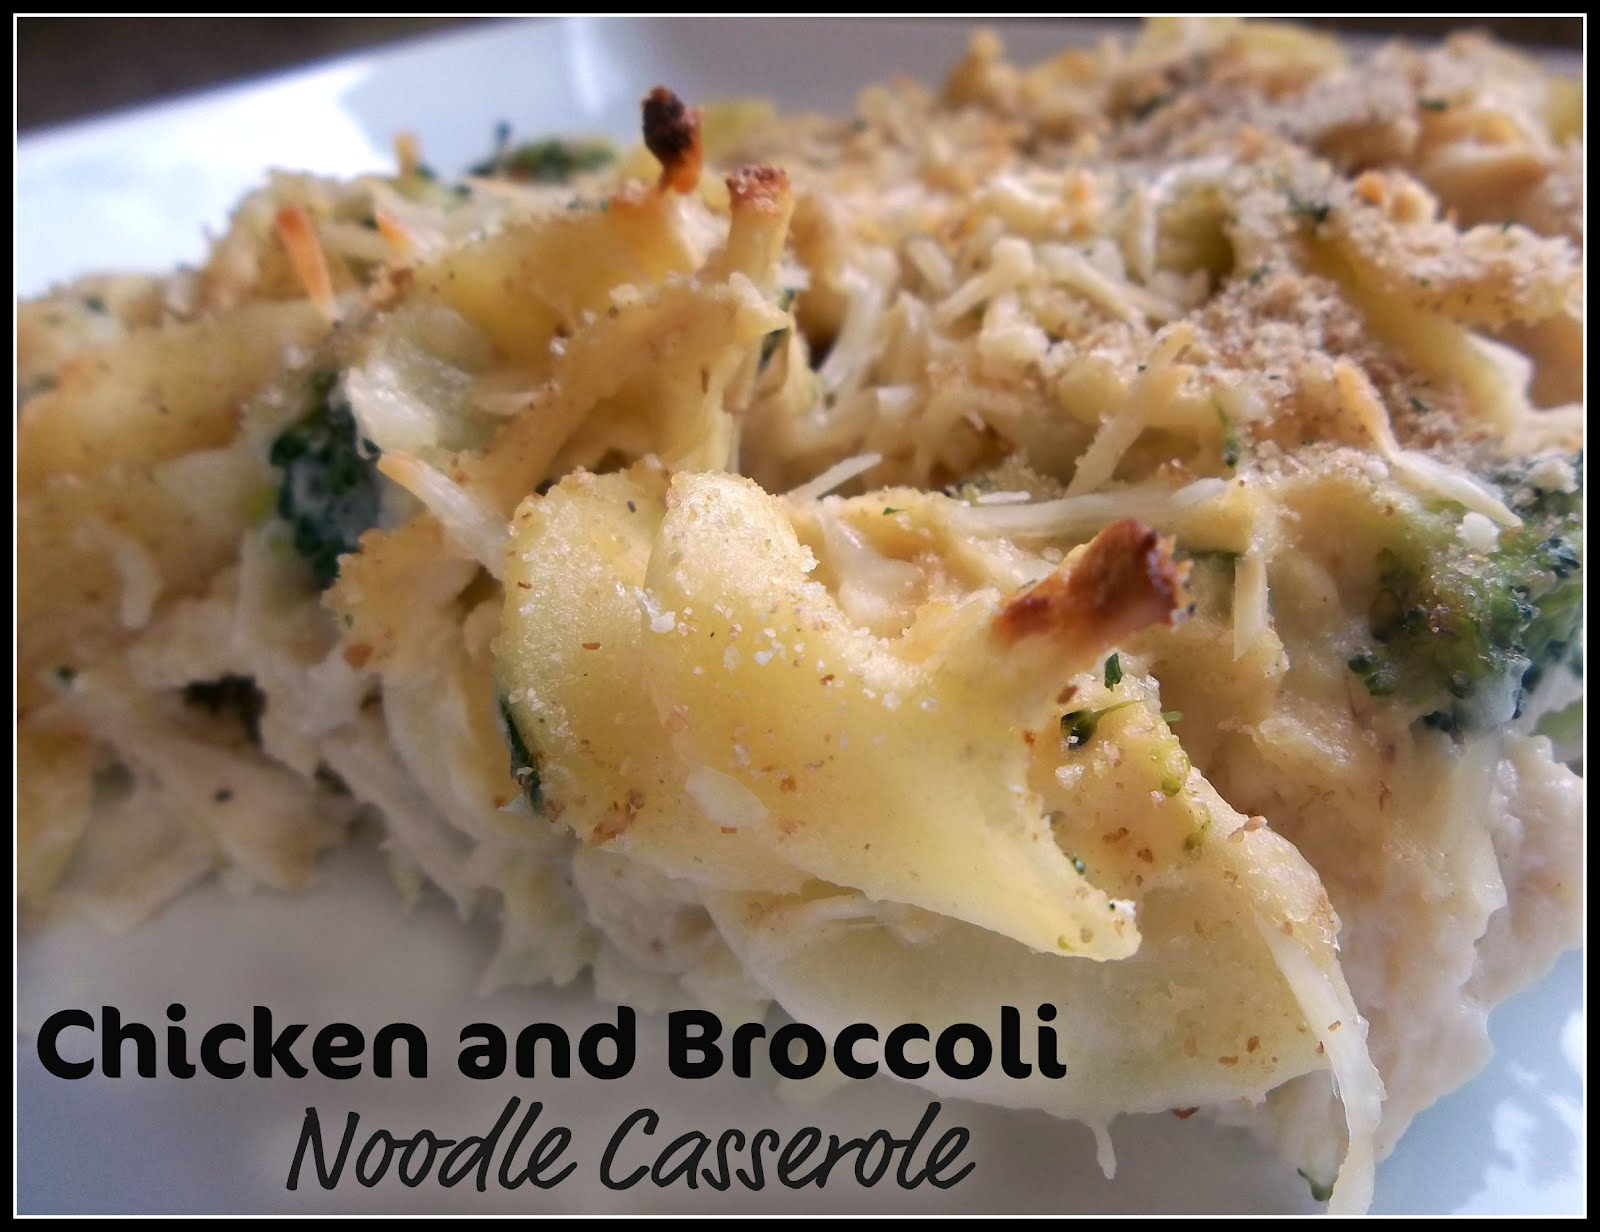 Chicken and Broccoli Noodle Casserole | Six Sisters' Stuff